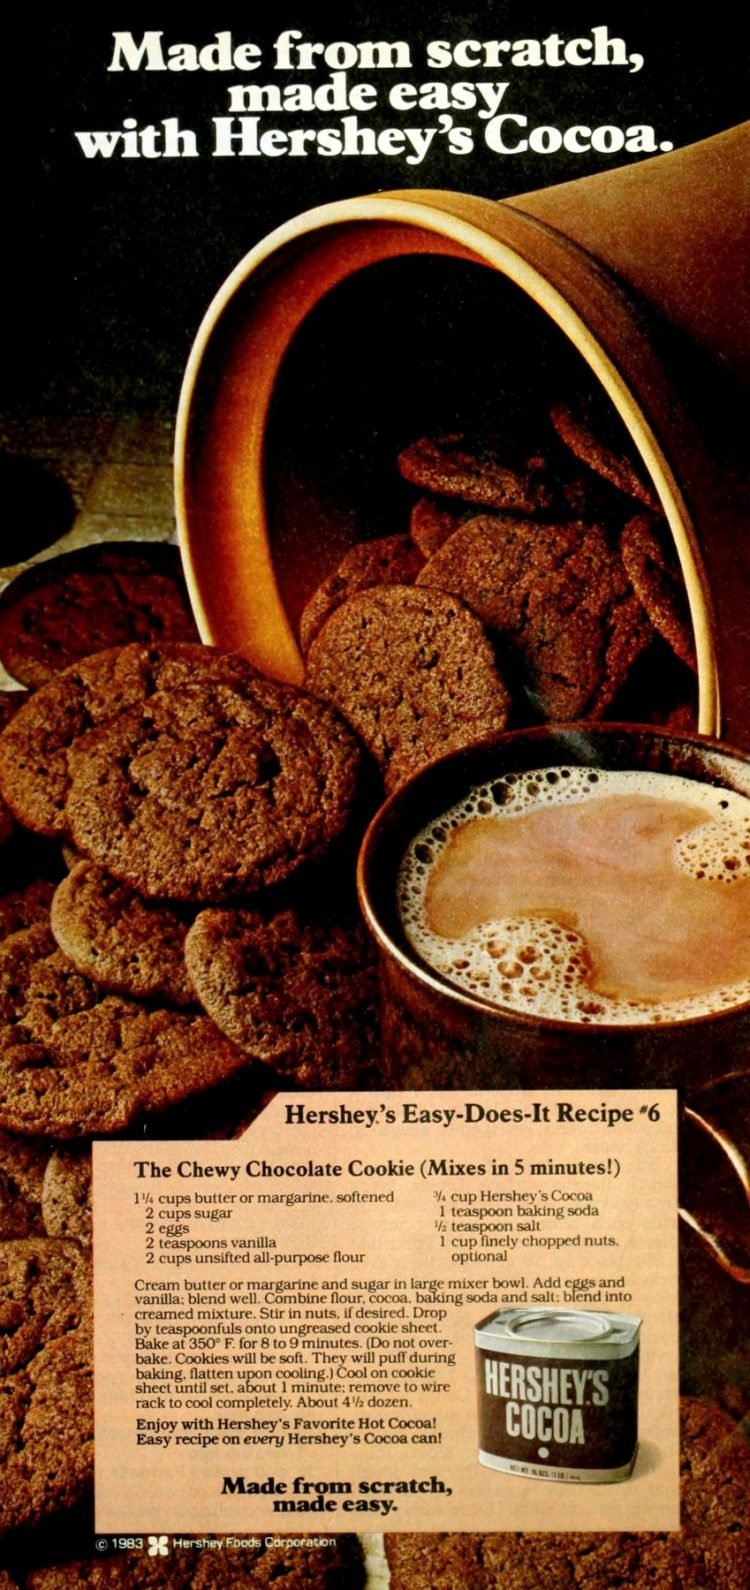 Retro recipe for Hershey's chewy chocolate cookies